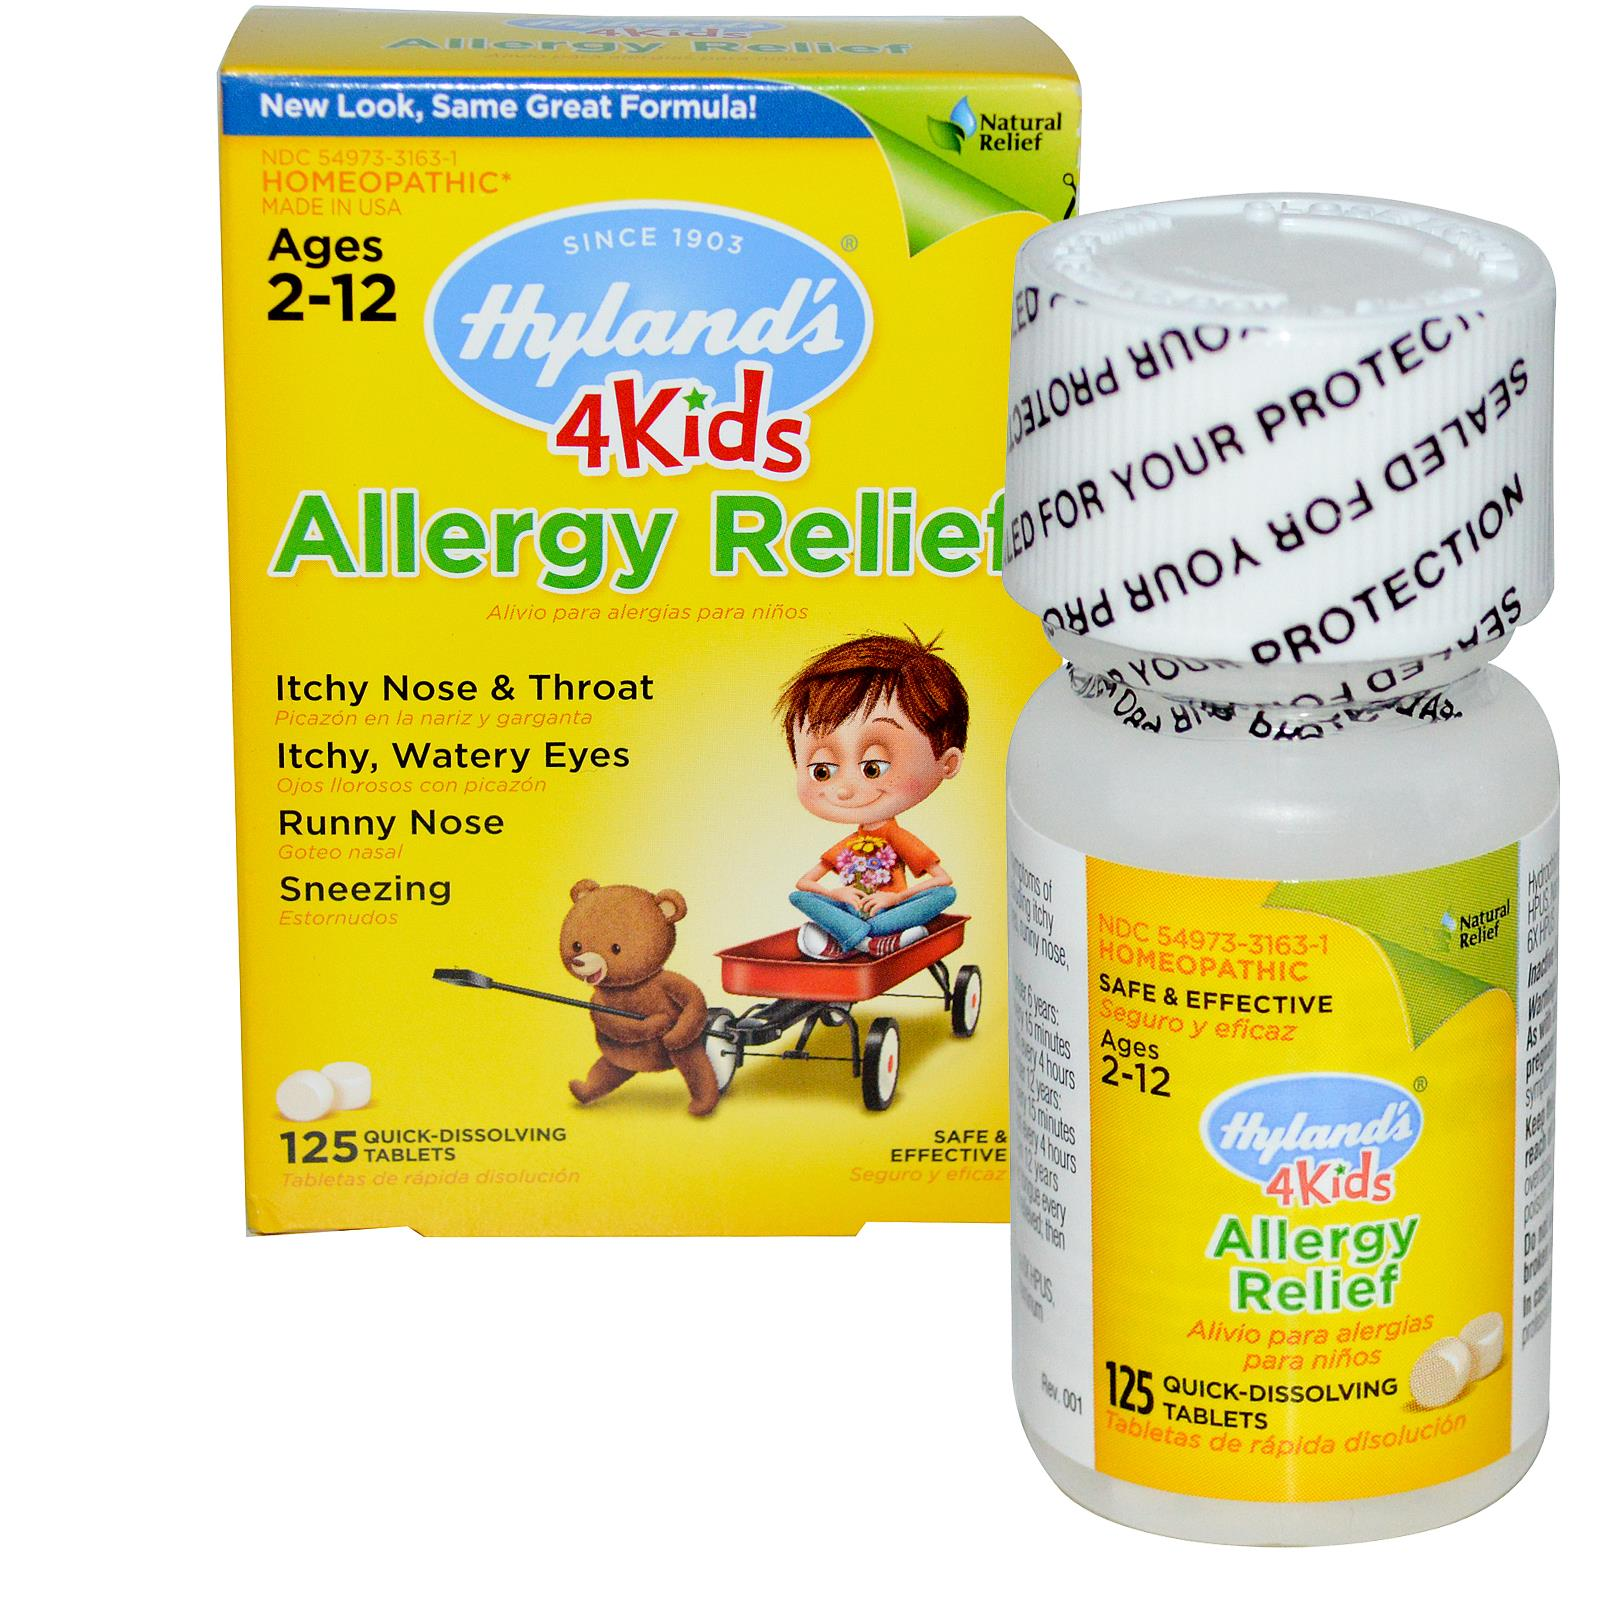 Hyland's allergy relief 4kids